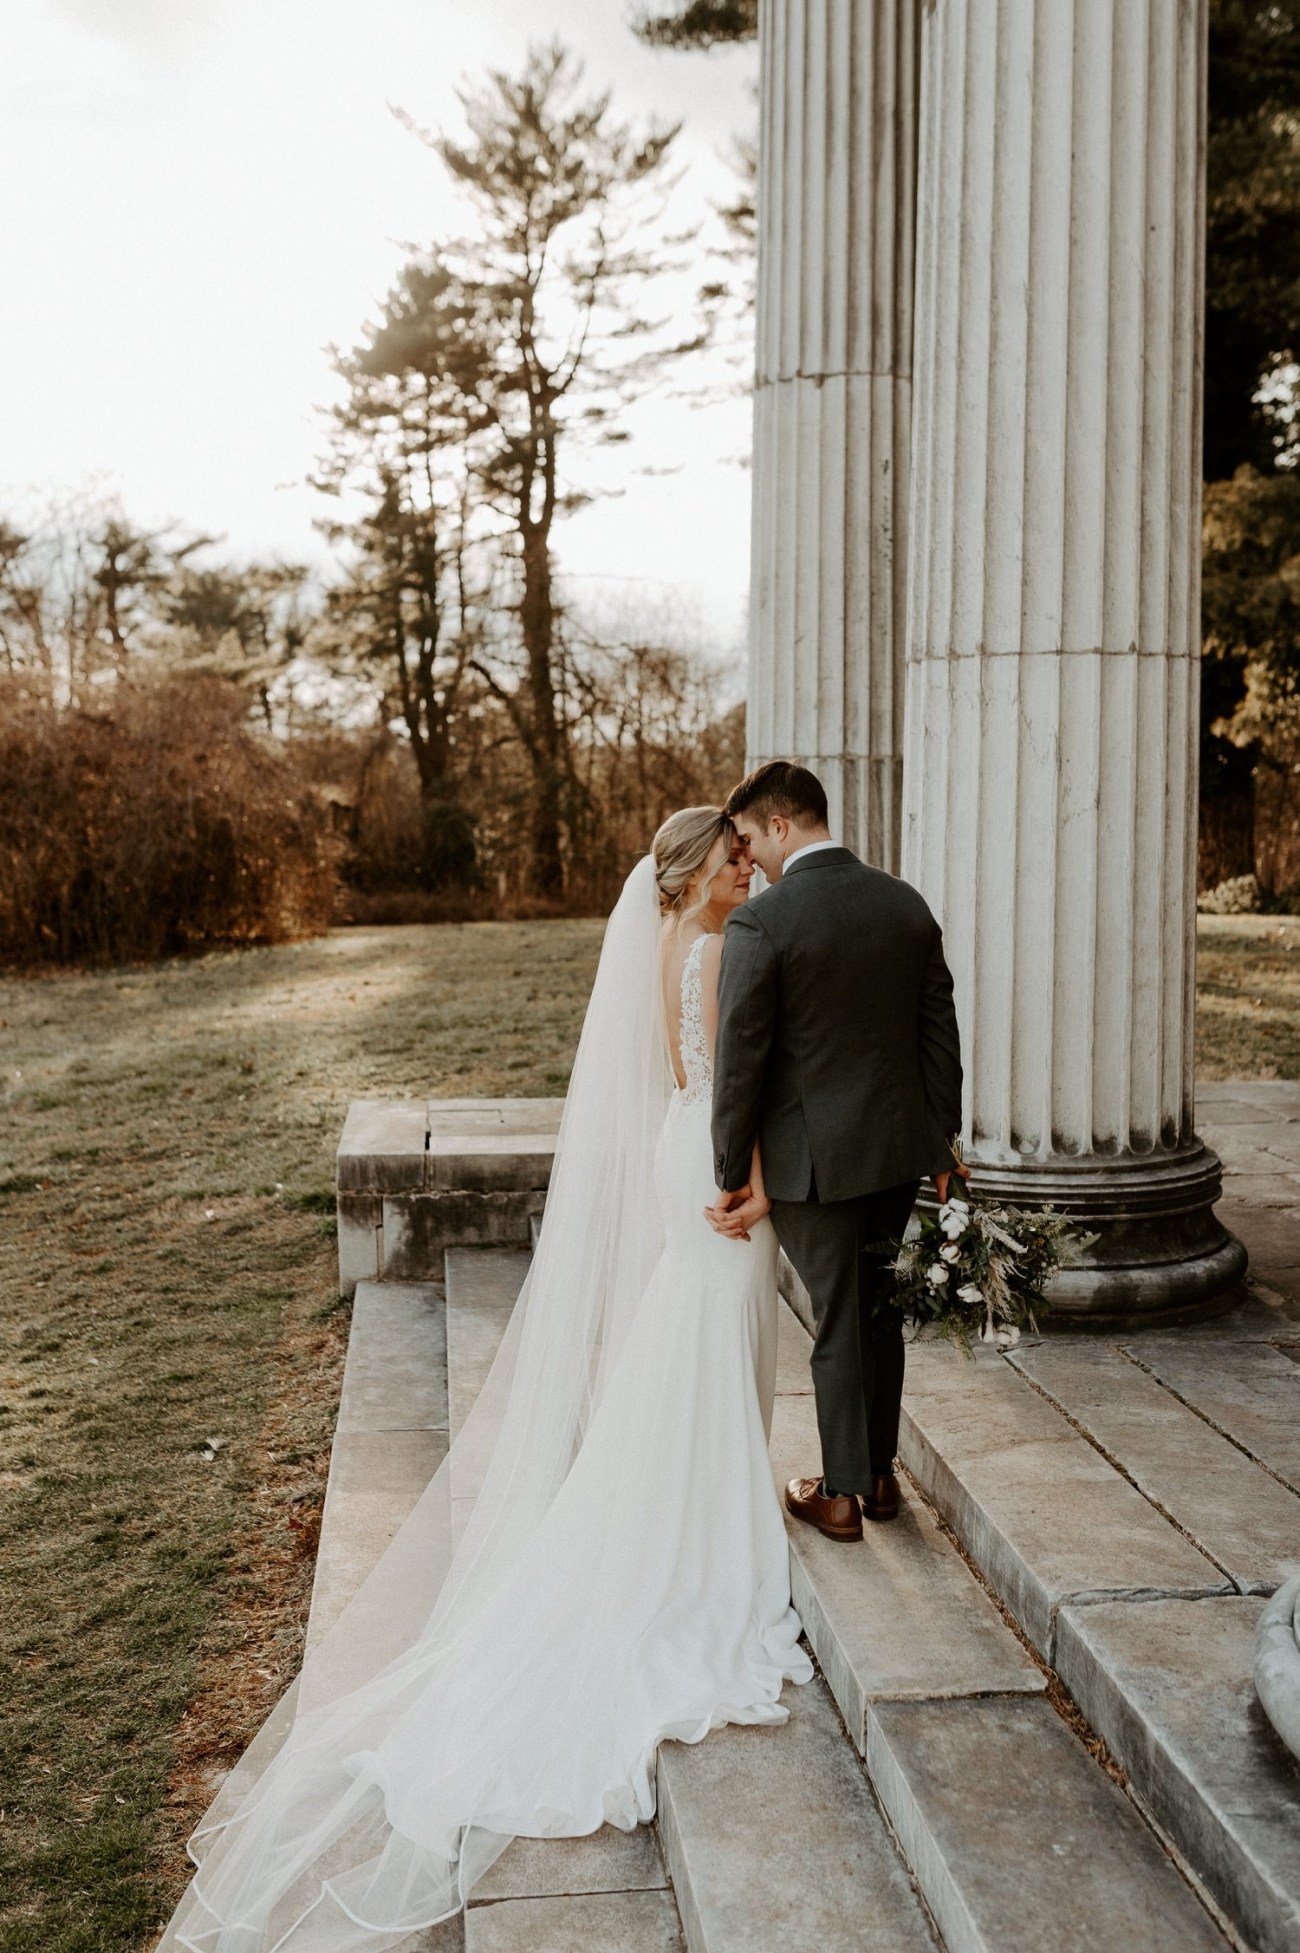 Princeton Battlefield Wedding Princeton University Elopement New Jersey Wedding Photographer Anais Possamai Photography 36